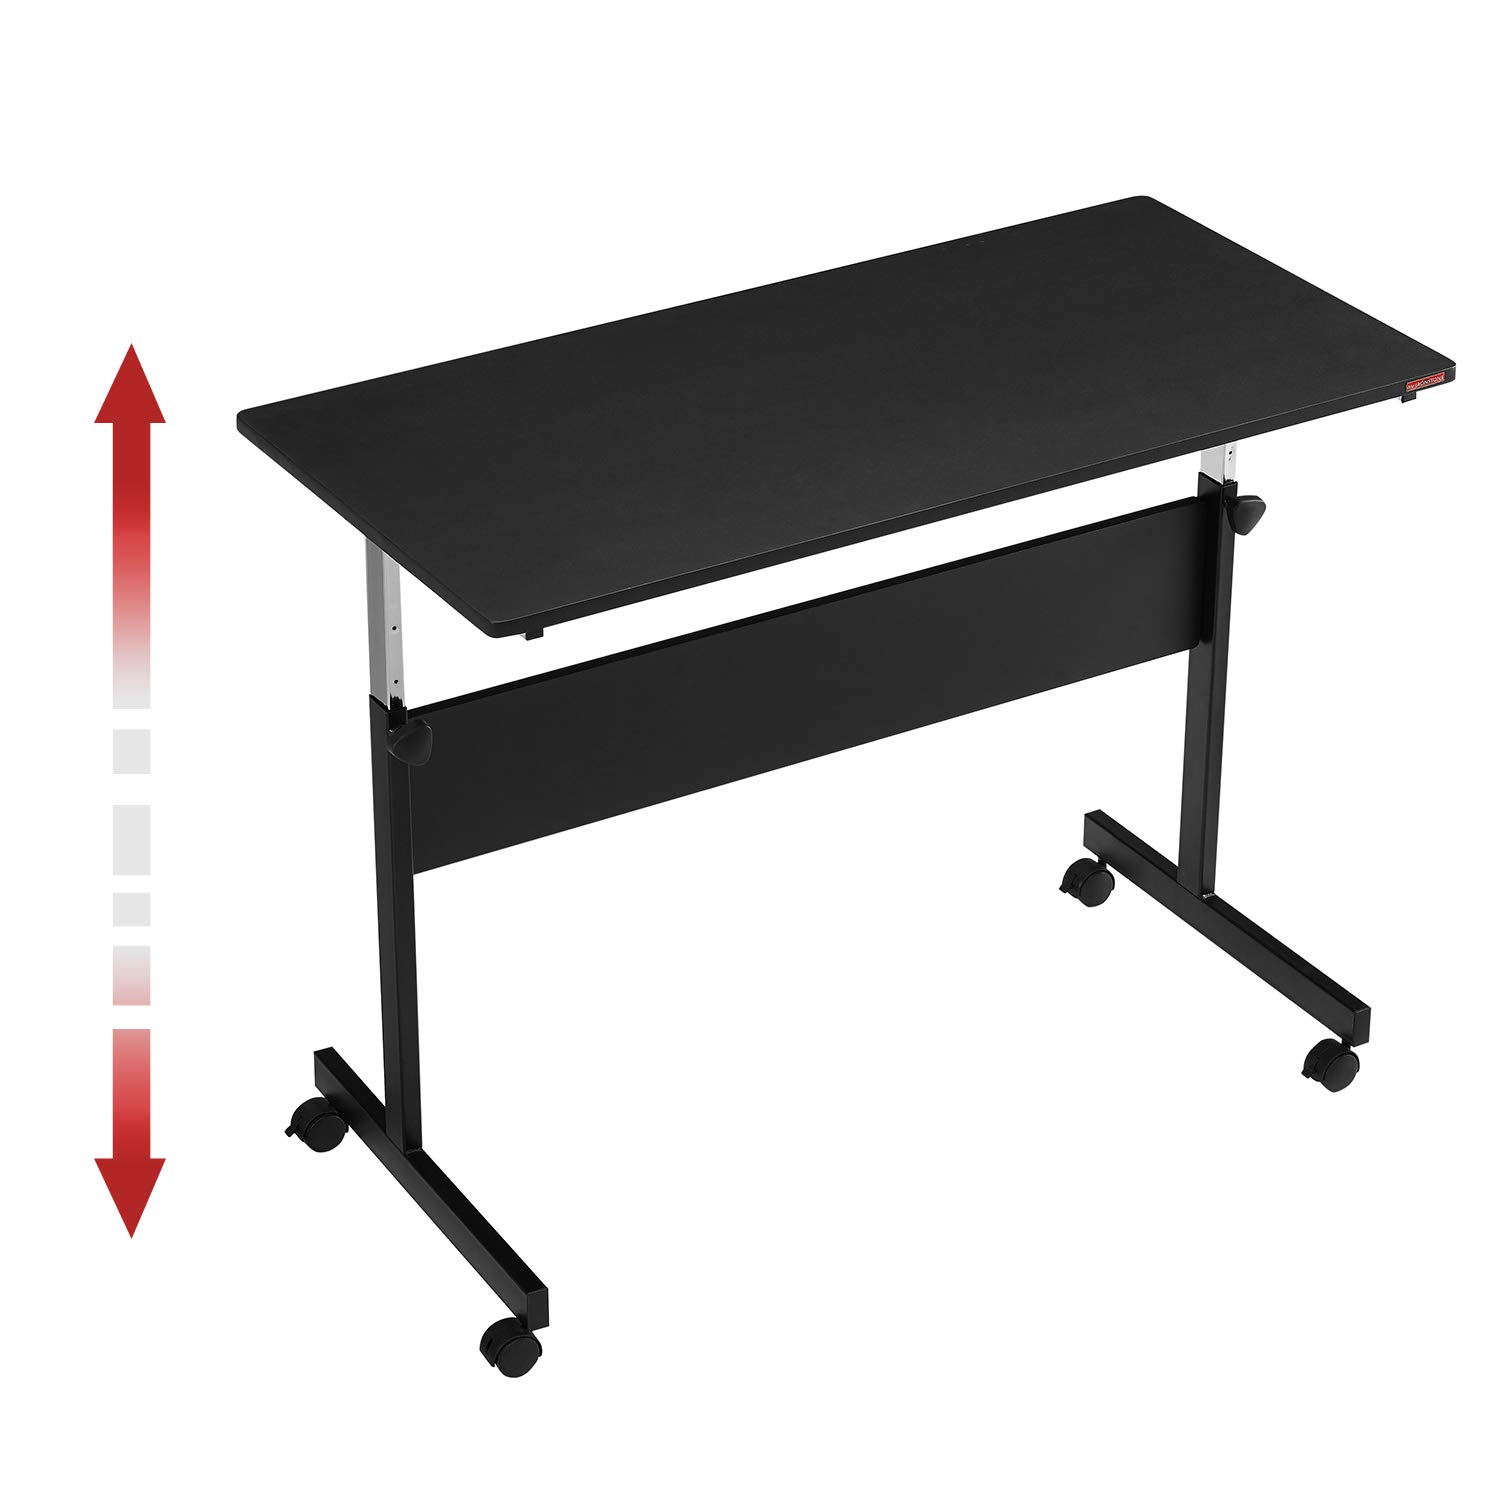 Mr IRONSTONE Height Adjustable Desk Sit-Stand 47.6'' Elevate Mobile Computer Desk Home & Office Workstation with Rolling Wheels(Black)